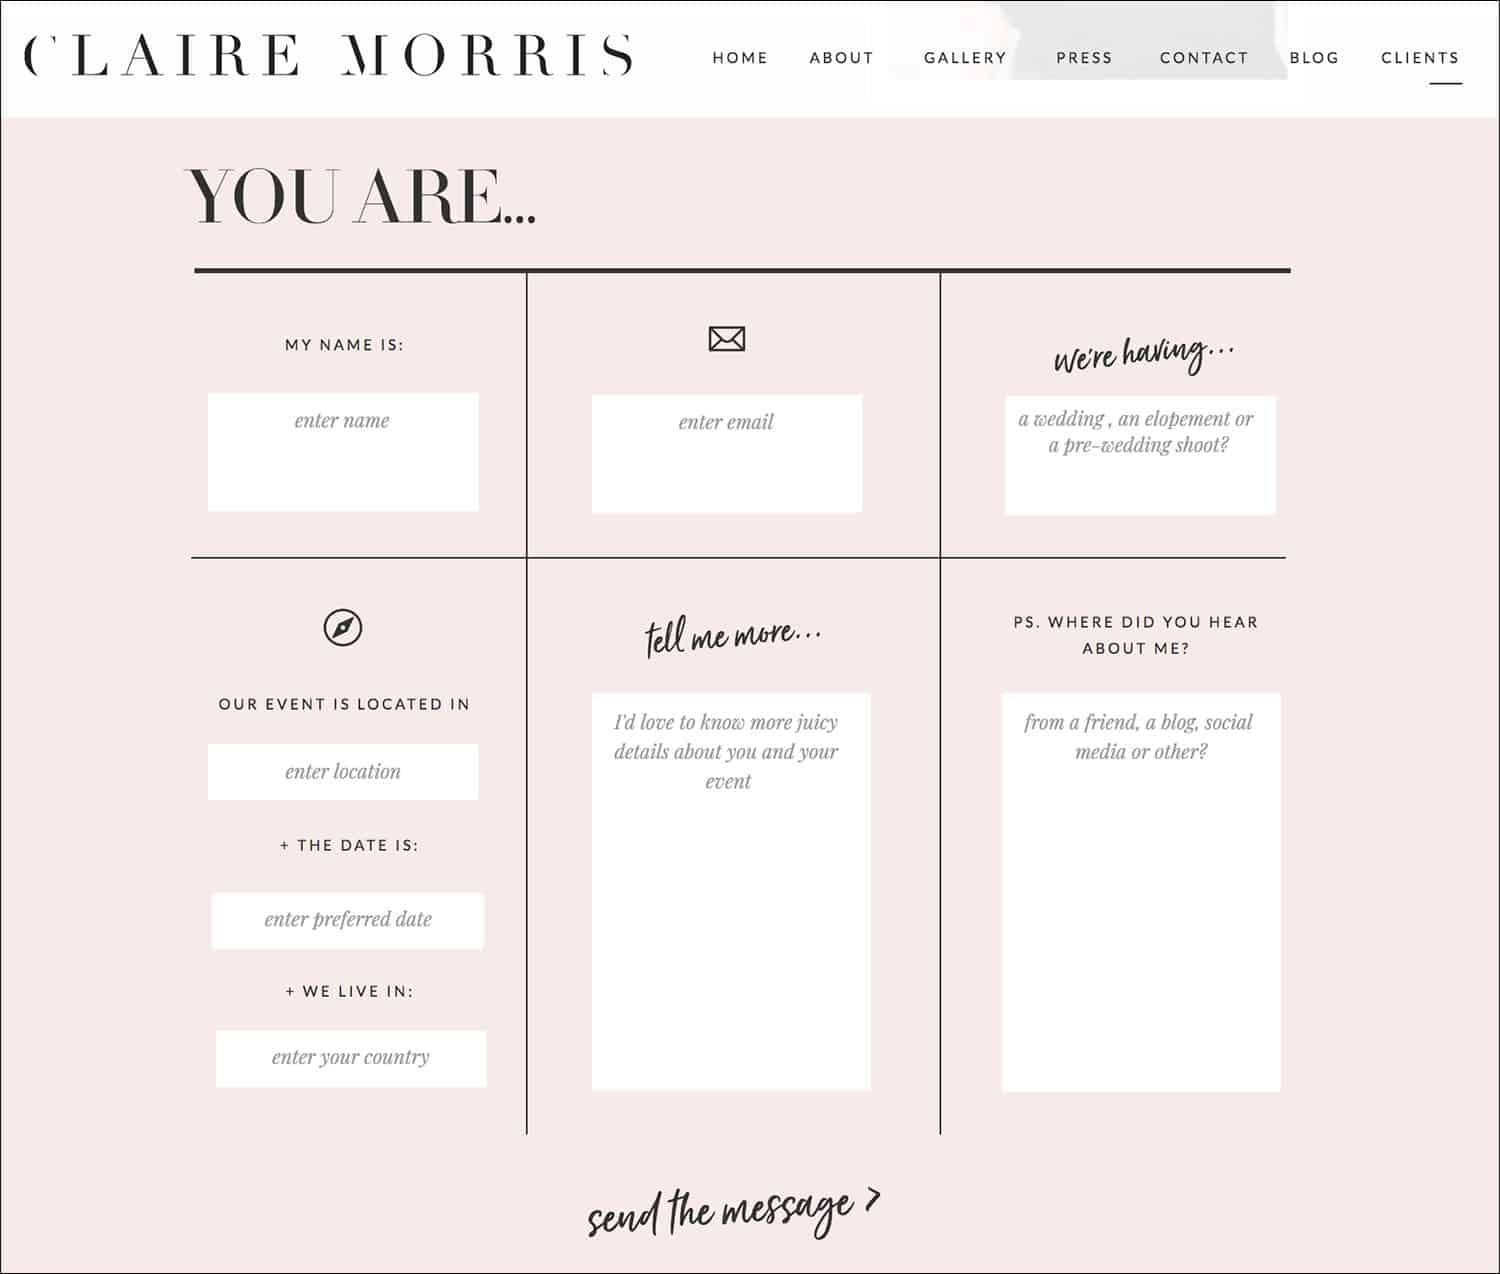 How To Make A Photography Website Your Dream Clients Can't Resist: Claire Morris' contact form is a genius example of brand intermingling with a clear call to action.